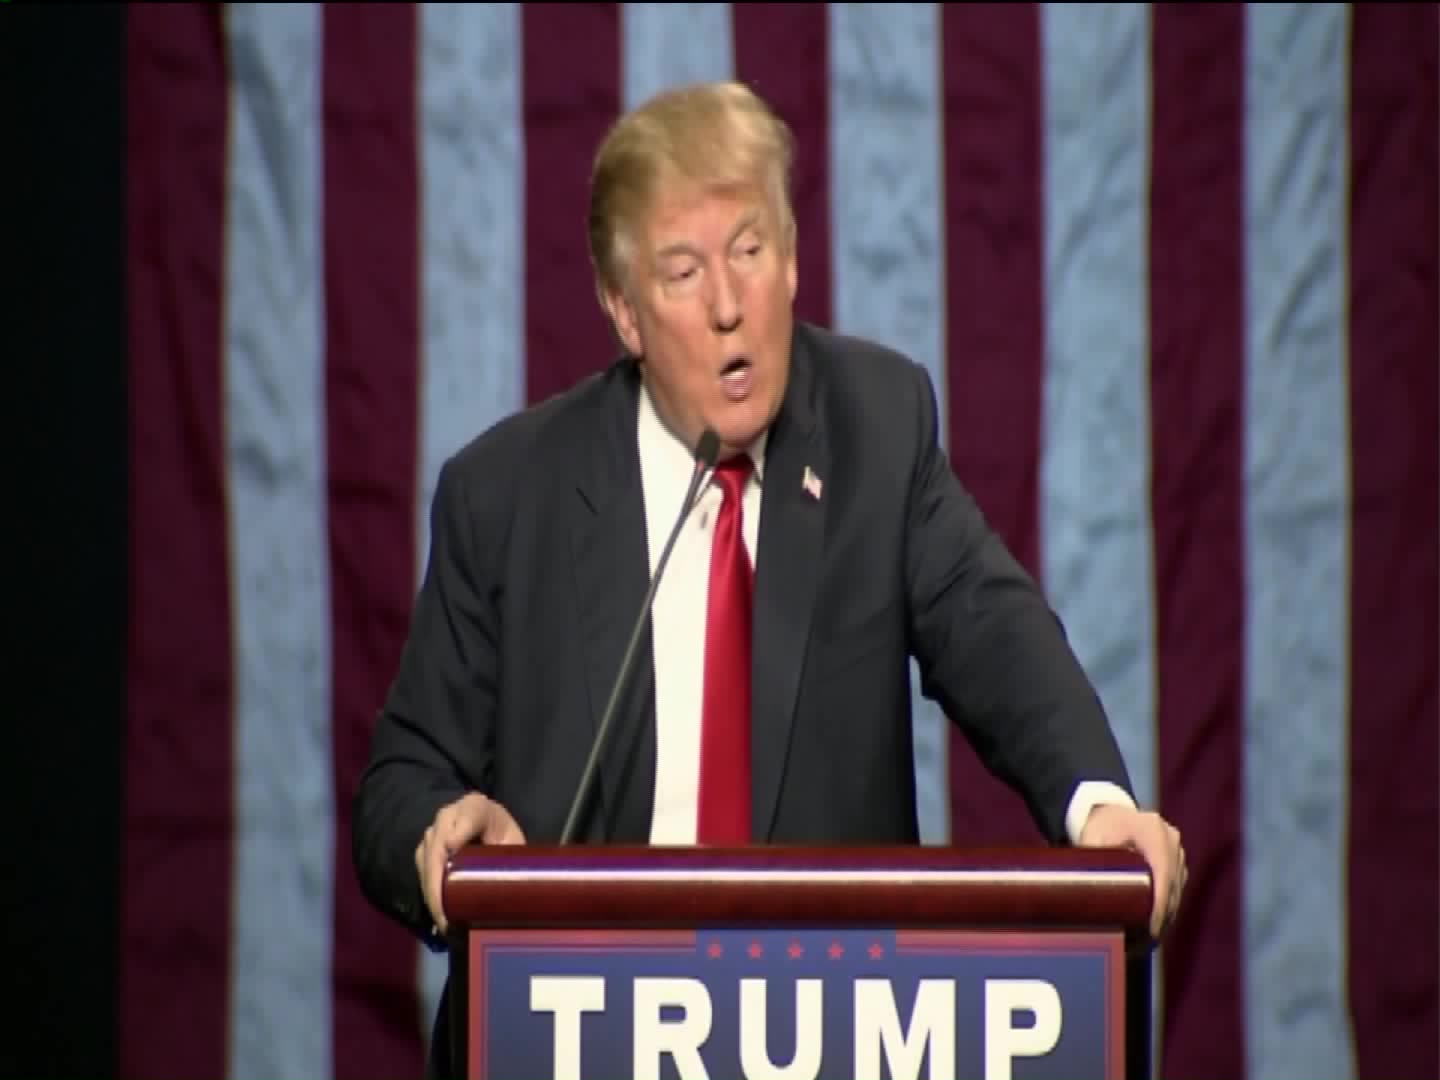 Donald Trump Says He Wants To Ban Muslims From Entering U.S.